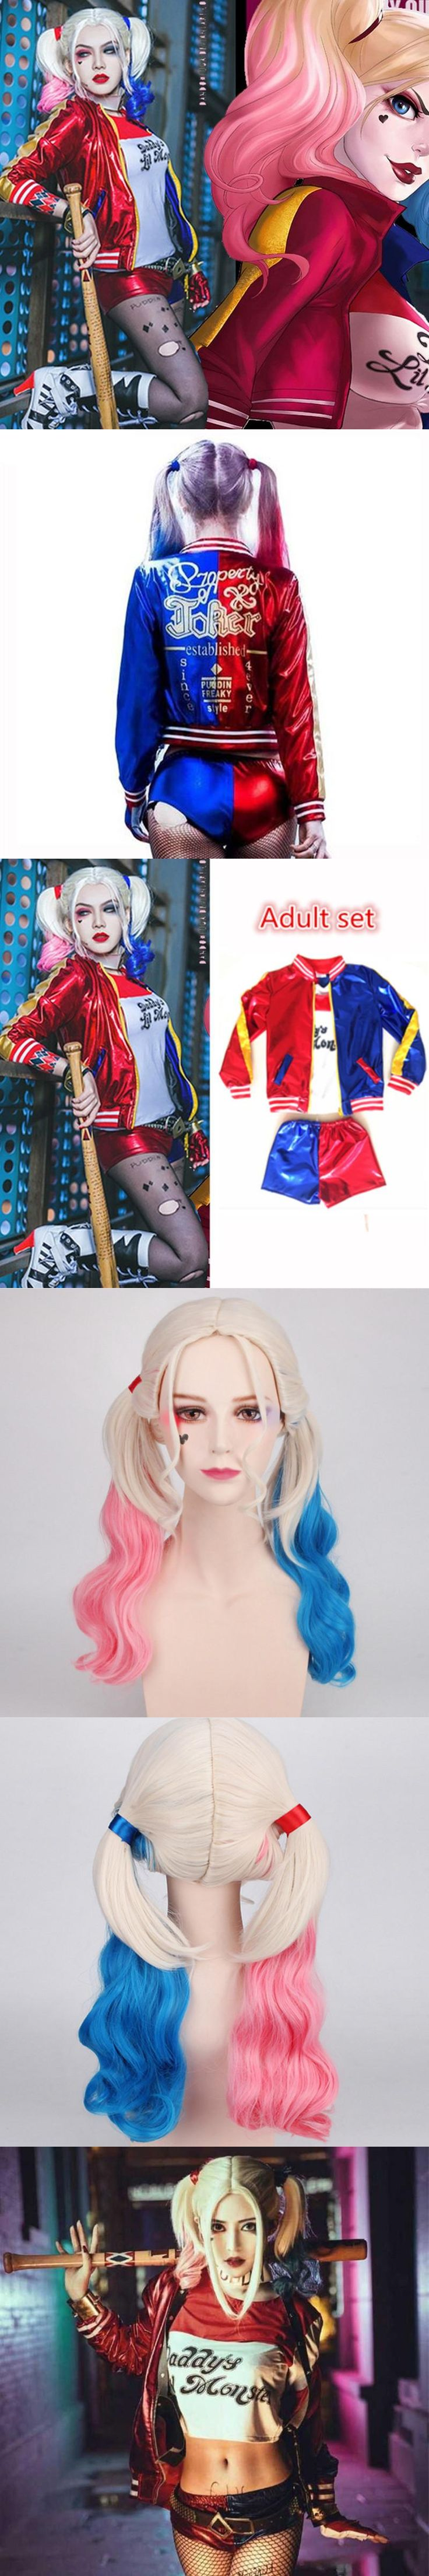 Christmas New Year Girls Women Adult Suicide Squad Harley Quinn Cosplay Costumes Jacket Daddy's Lil Monster T Shirt Shorts Sets